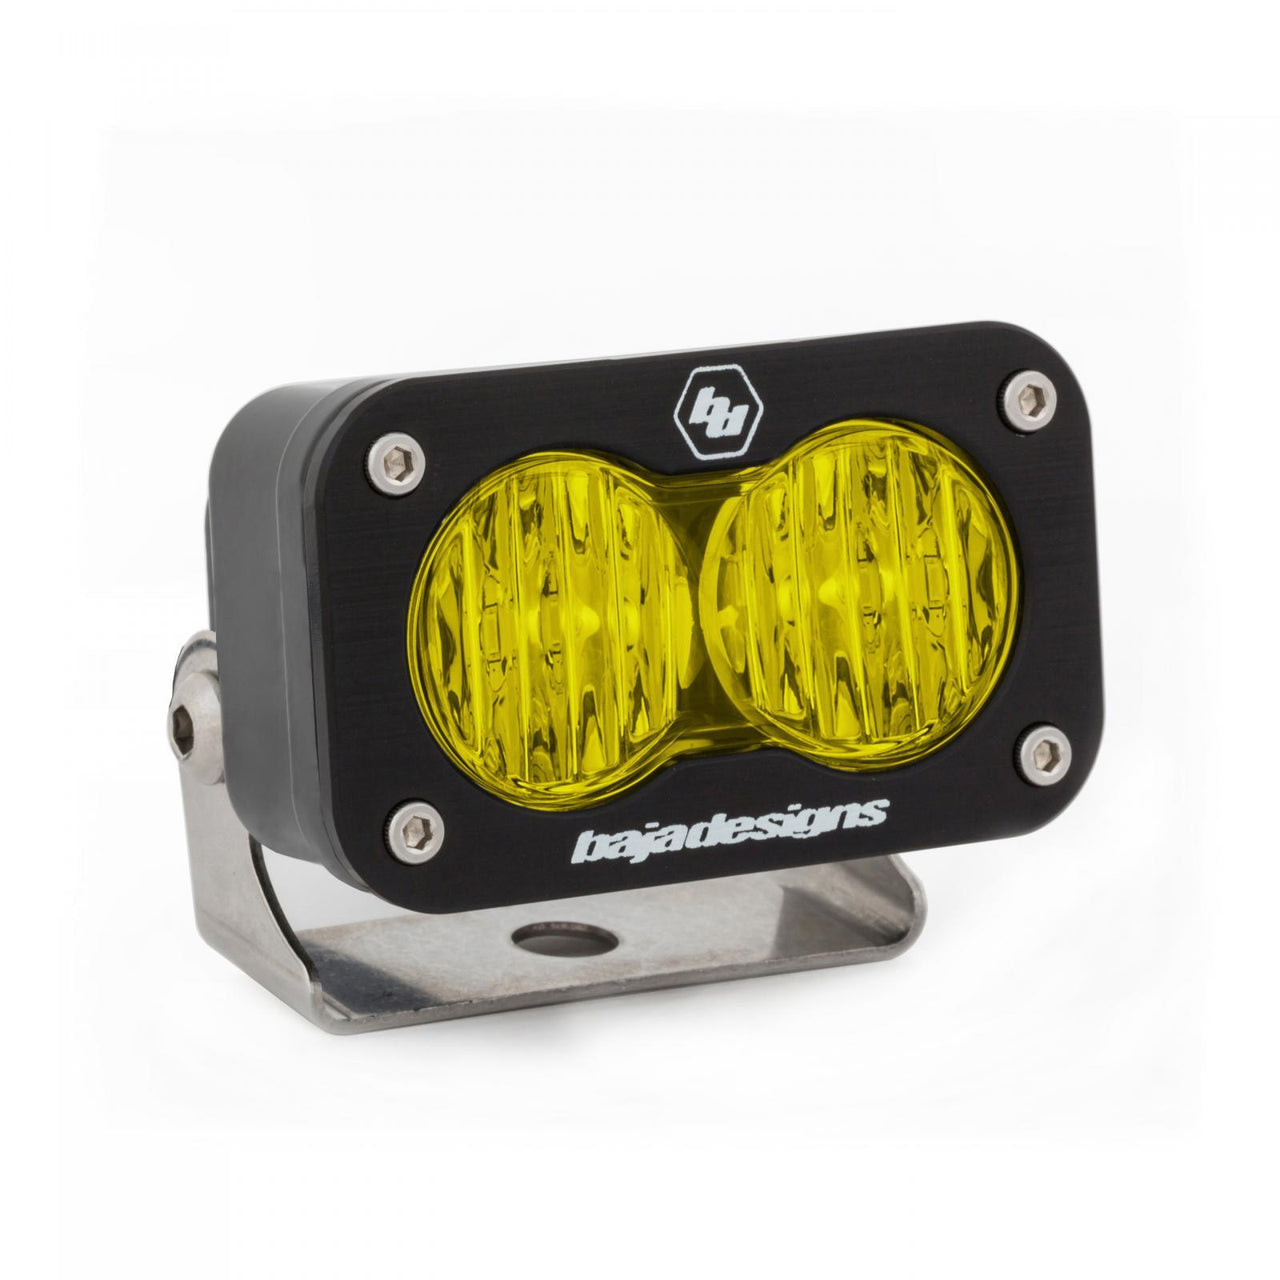 LED Work Light Amber Lens Wide Cornering Pattern Each S2 Sport Baja Designs